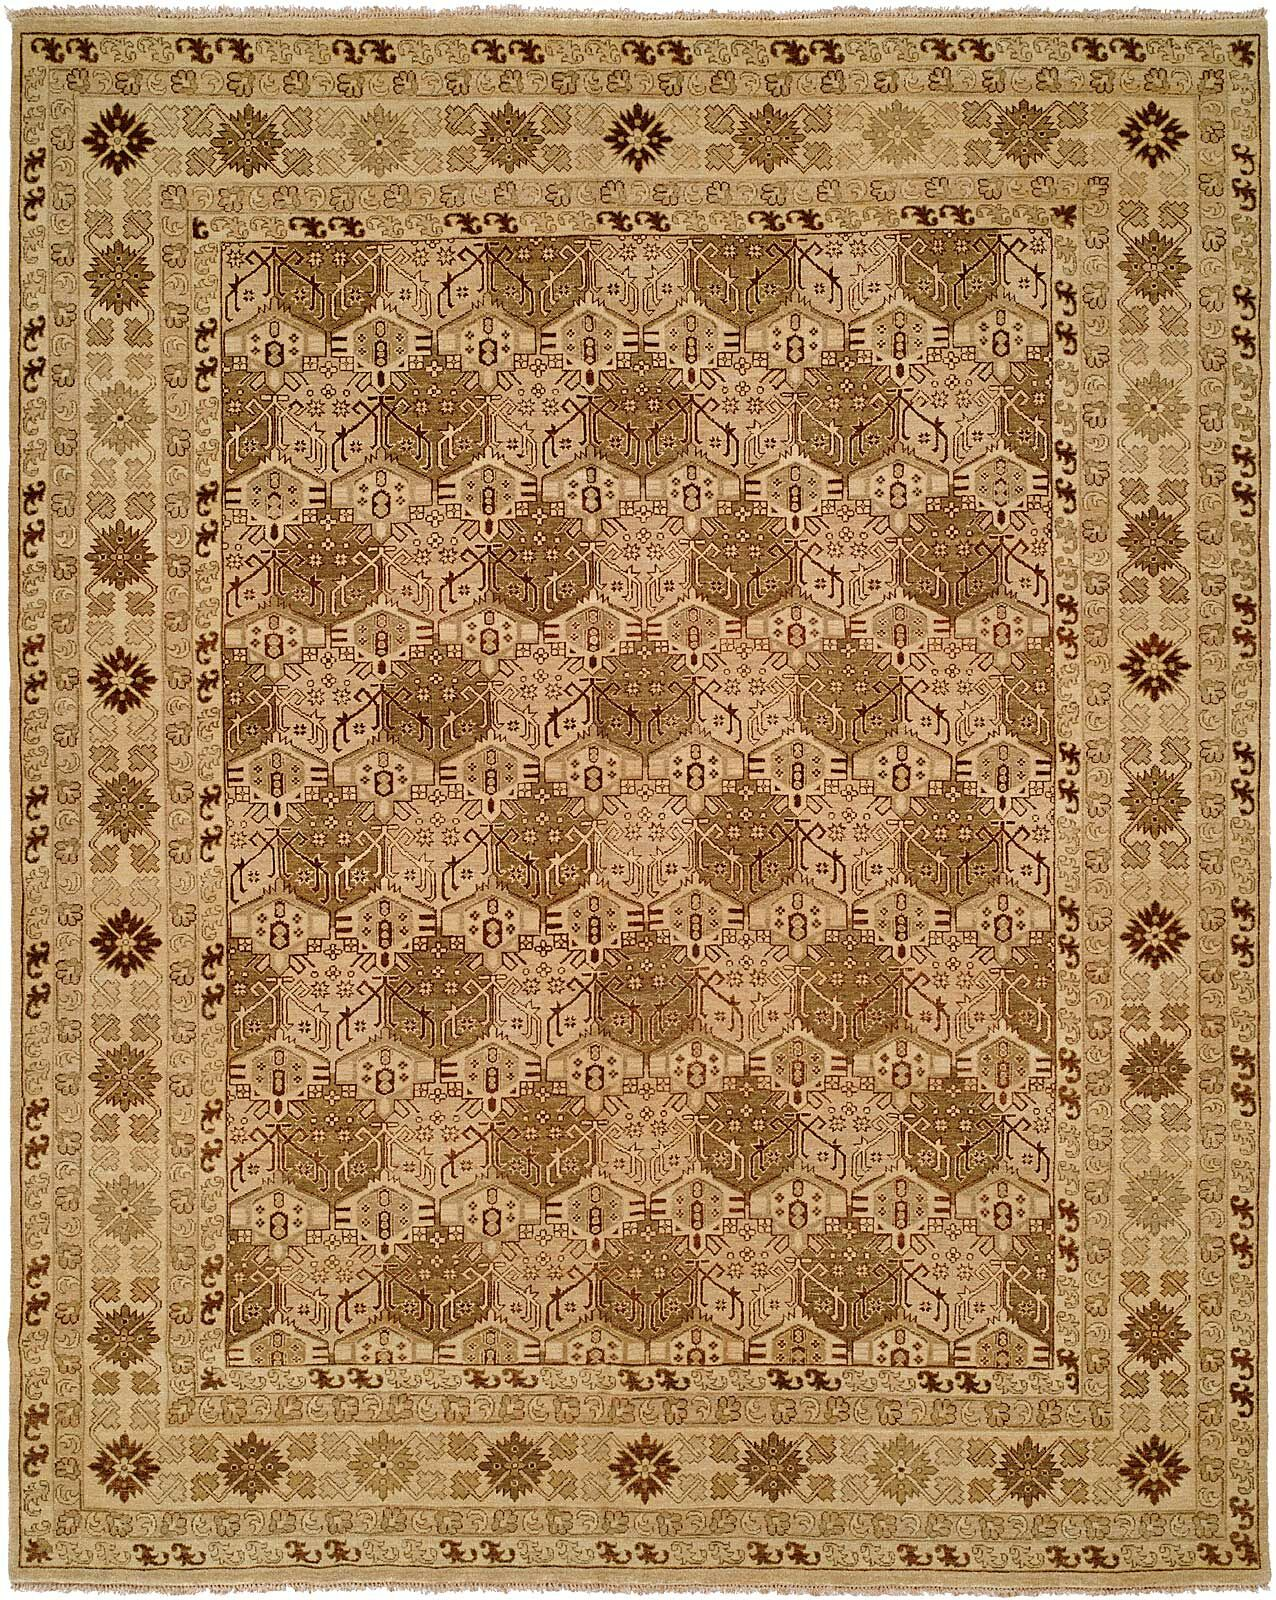 Mcandrews Hand Knotted Wool Tan Area Rug Rug Size: Rectangle 8' x 10'